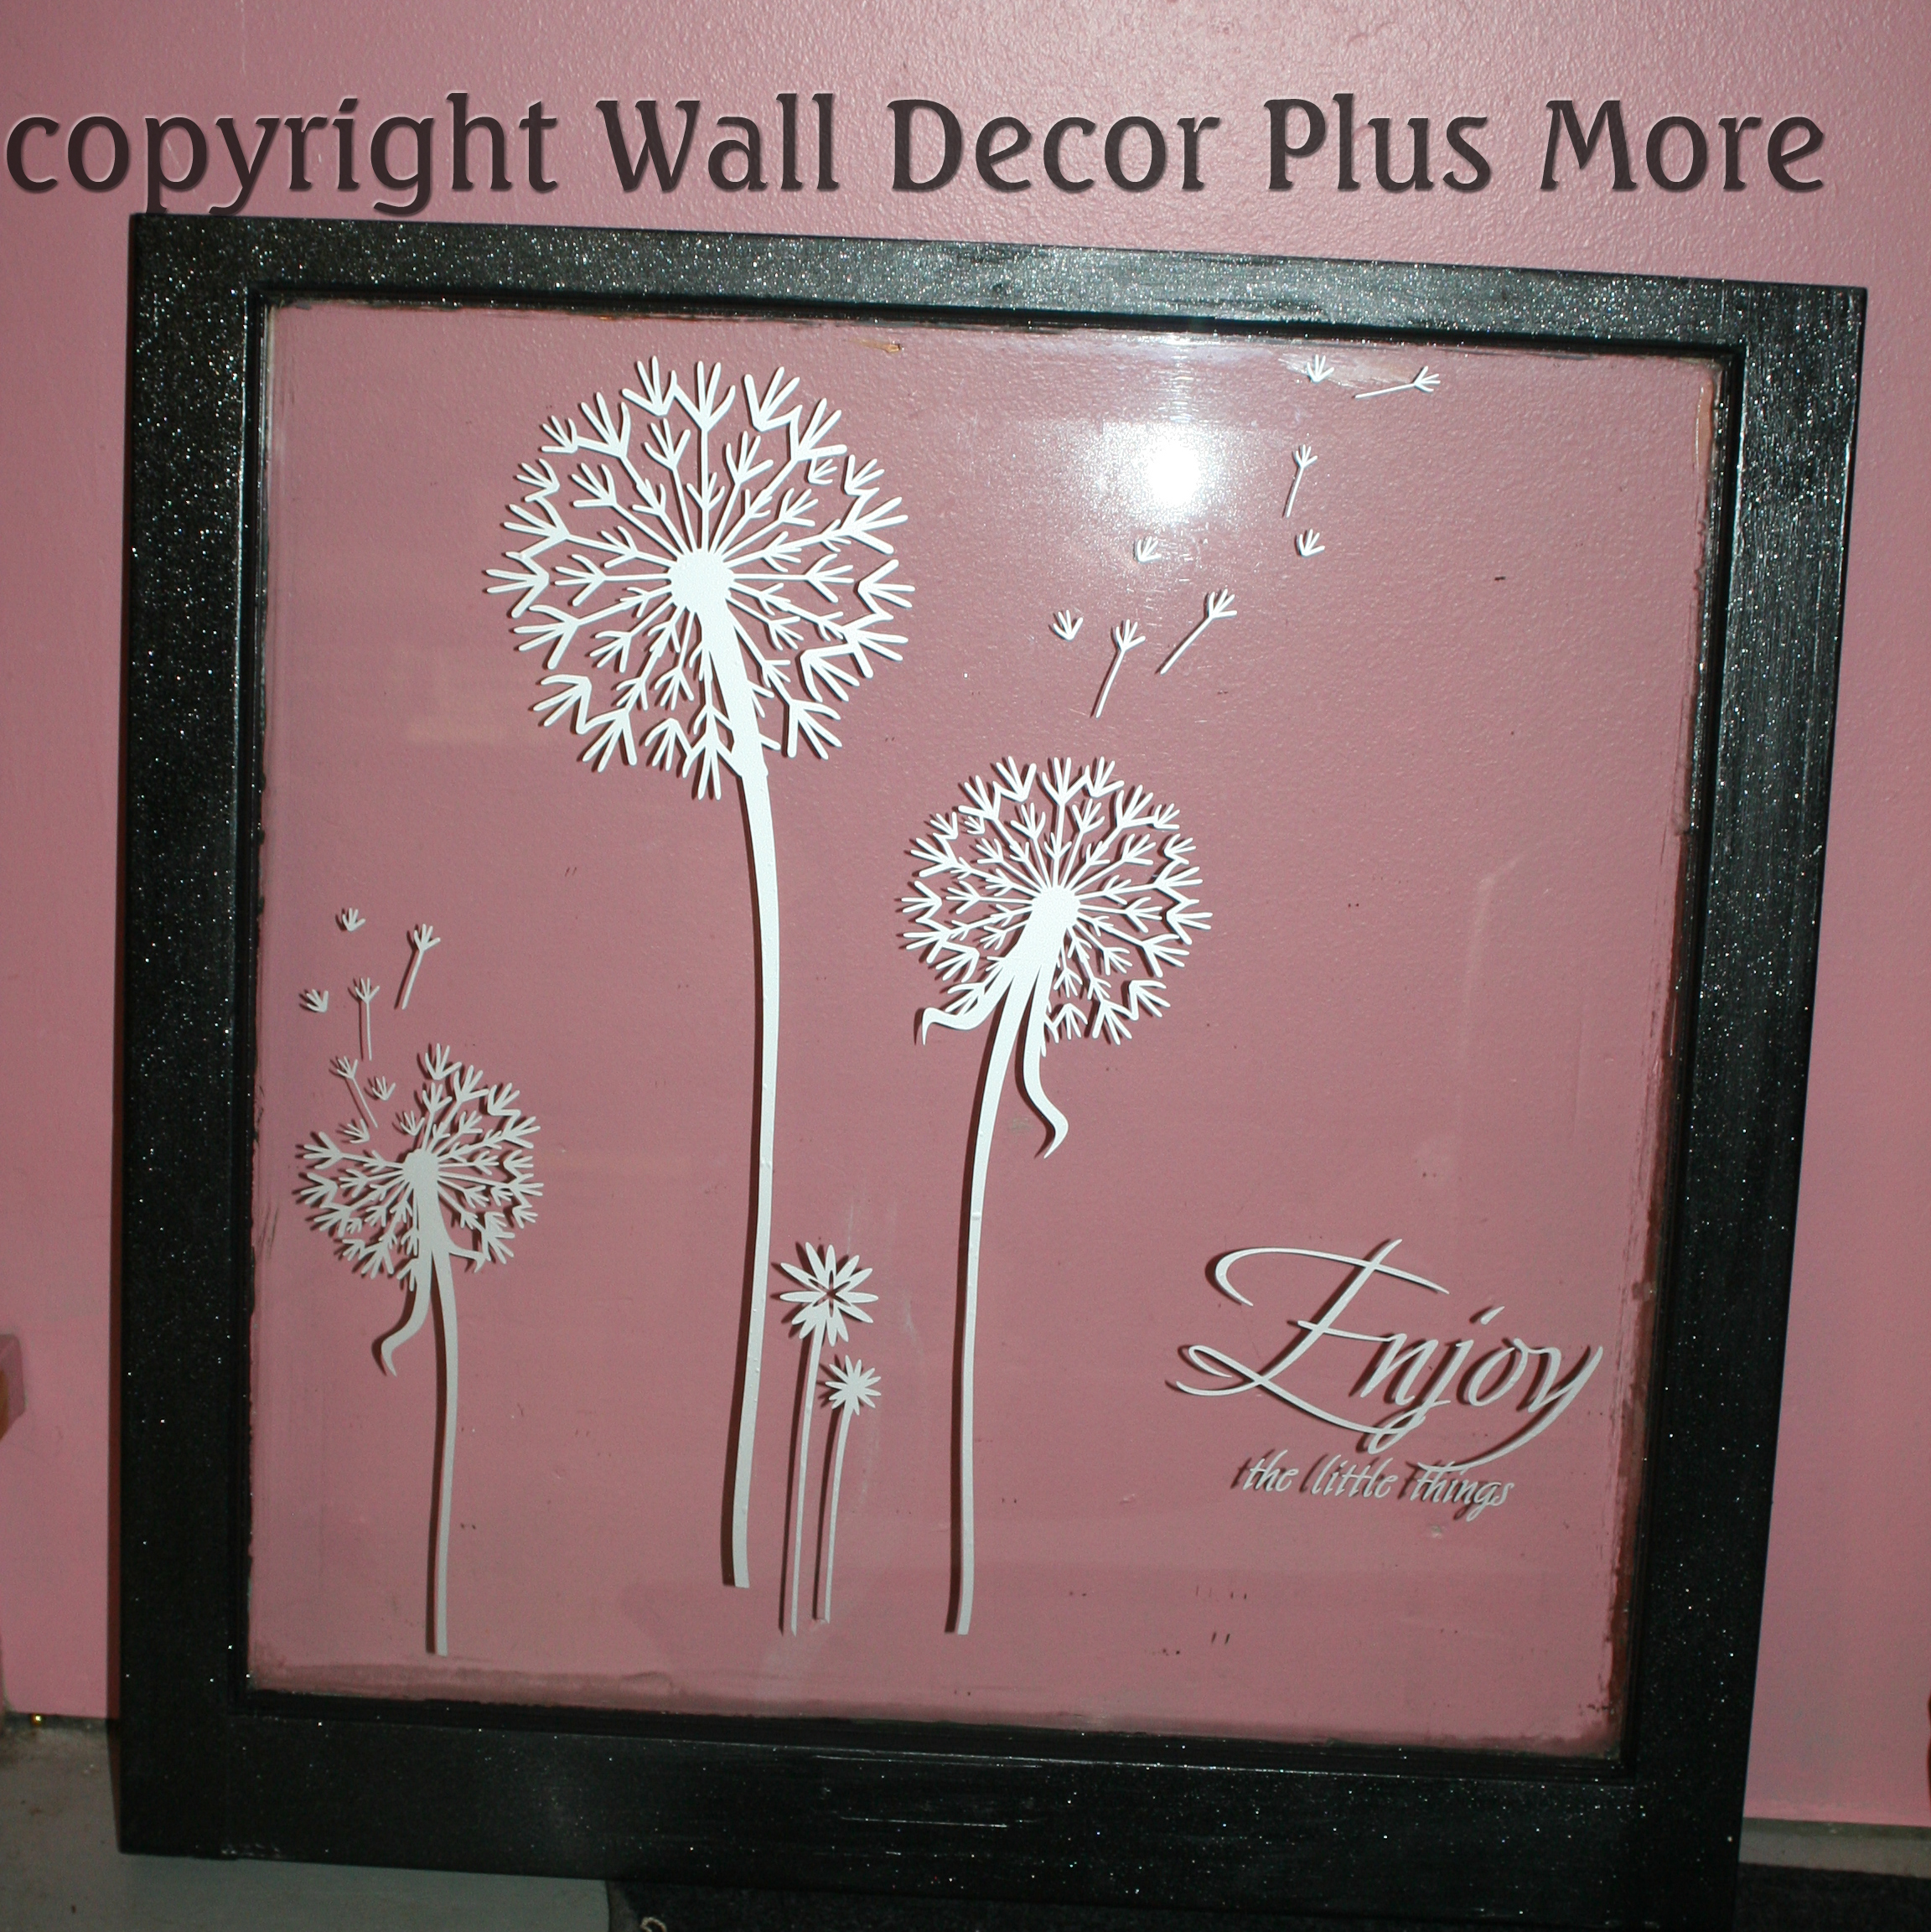 Using Old Windows with Wall Decals in Home Decor - Wall Decor Plus ...